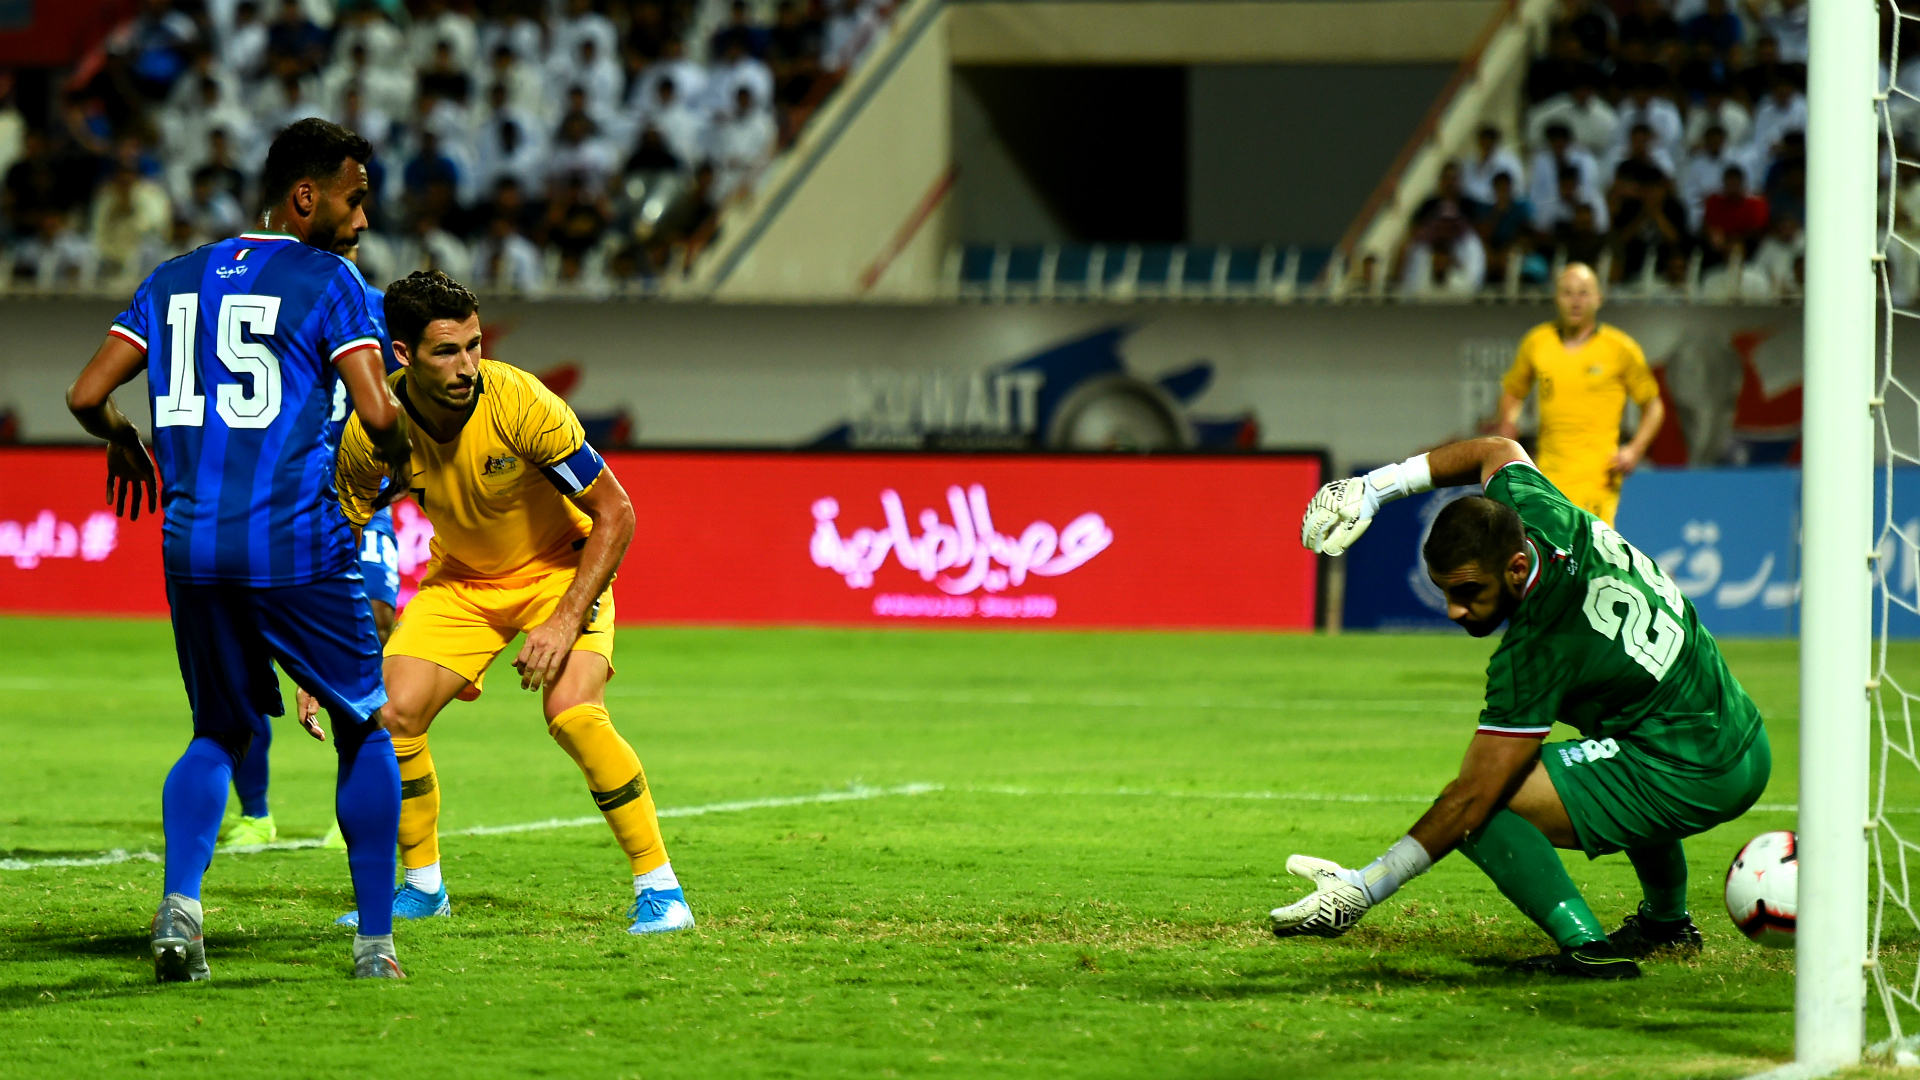 Kuwait 0-3 Australia: Socceroos cruise as Leckie grabs double